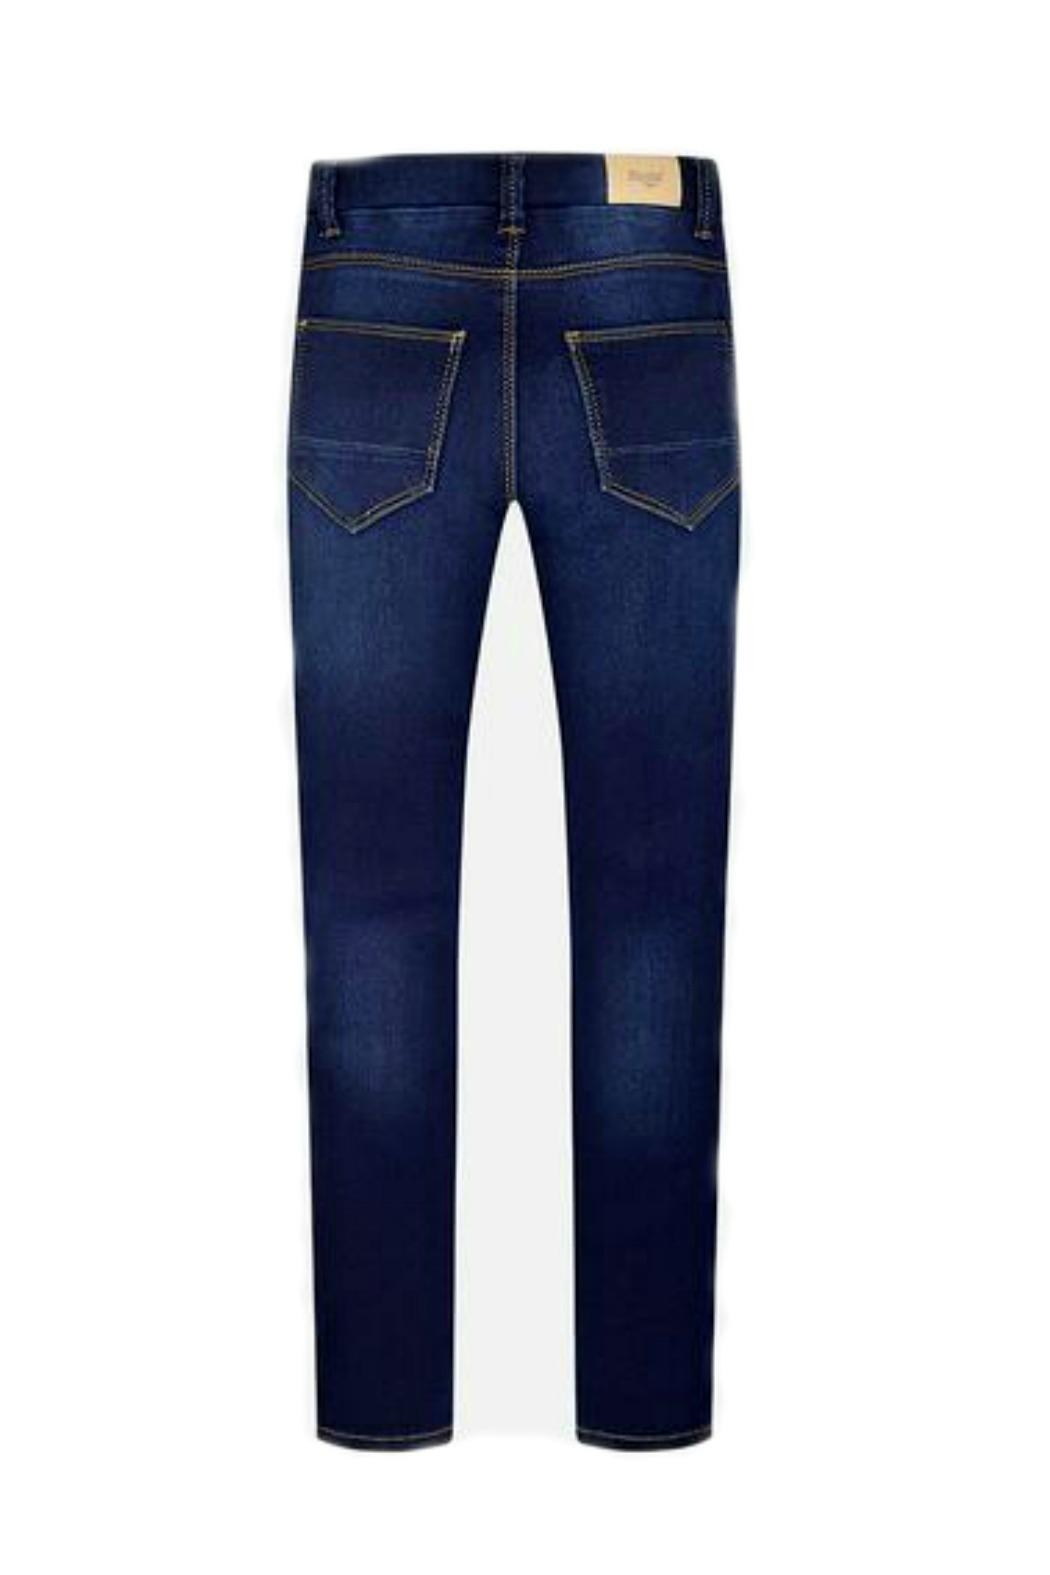 Mayoral Girls Skinny-Fit Denim-Jeggings - Side Cropped Image